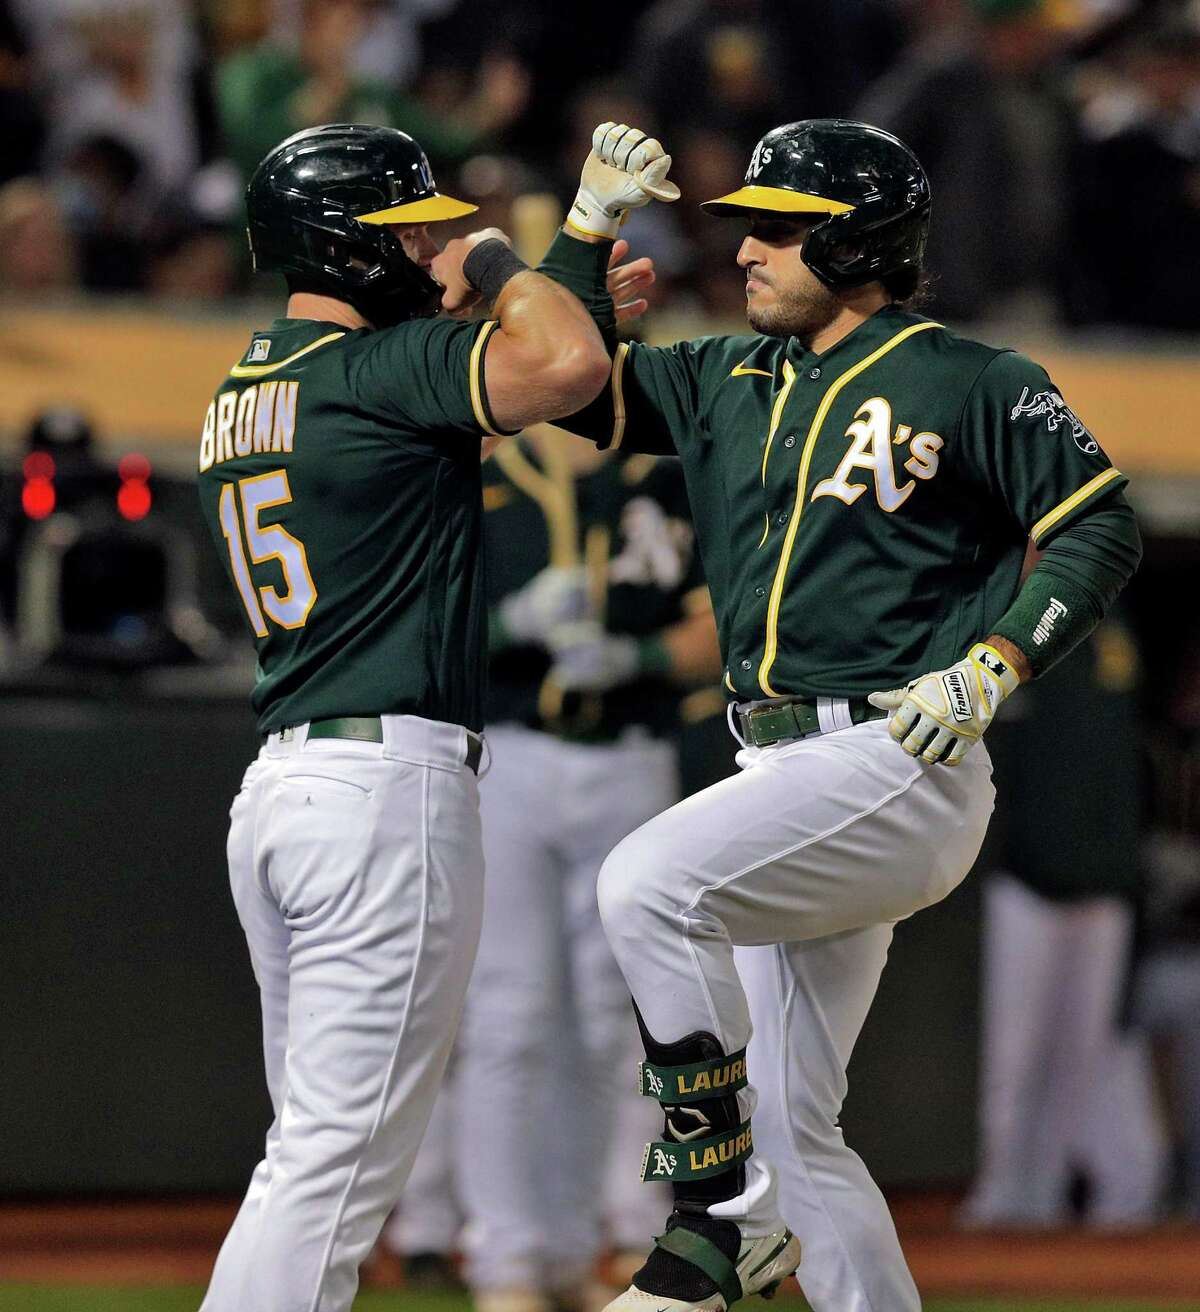 Ramon Laureano (22) gets a high five from Seth Brown (15) after they both scored on Laureano's three run homerun in the seventh inning as the Oakland Athletics played the Los Angeles Angels at the Coliseum in Oakland, Calif., on Monday, July 19, 2021.